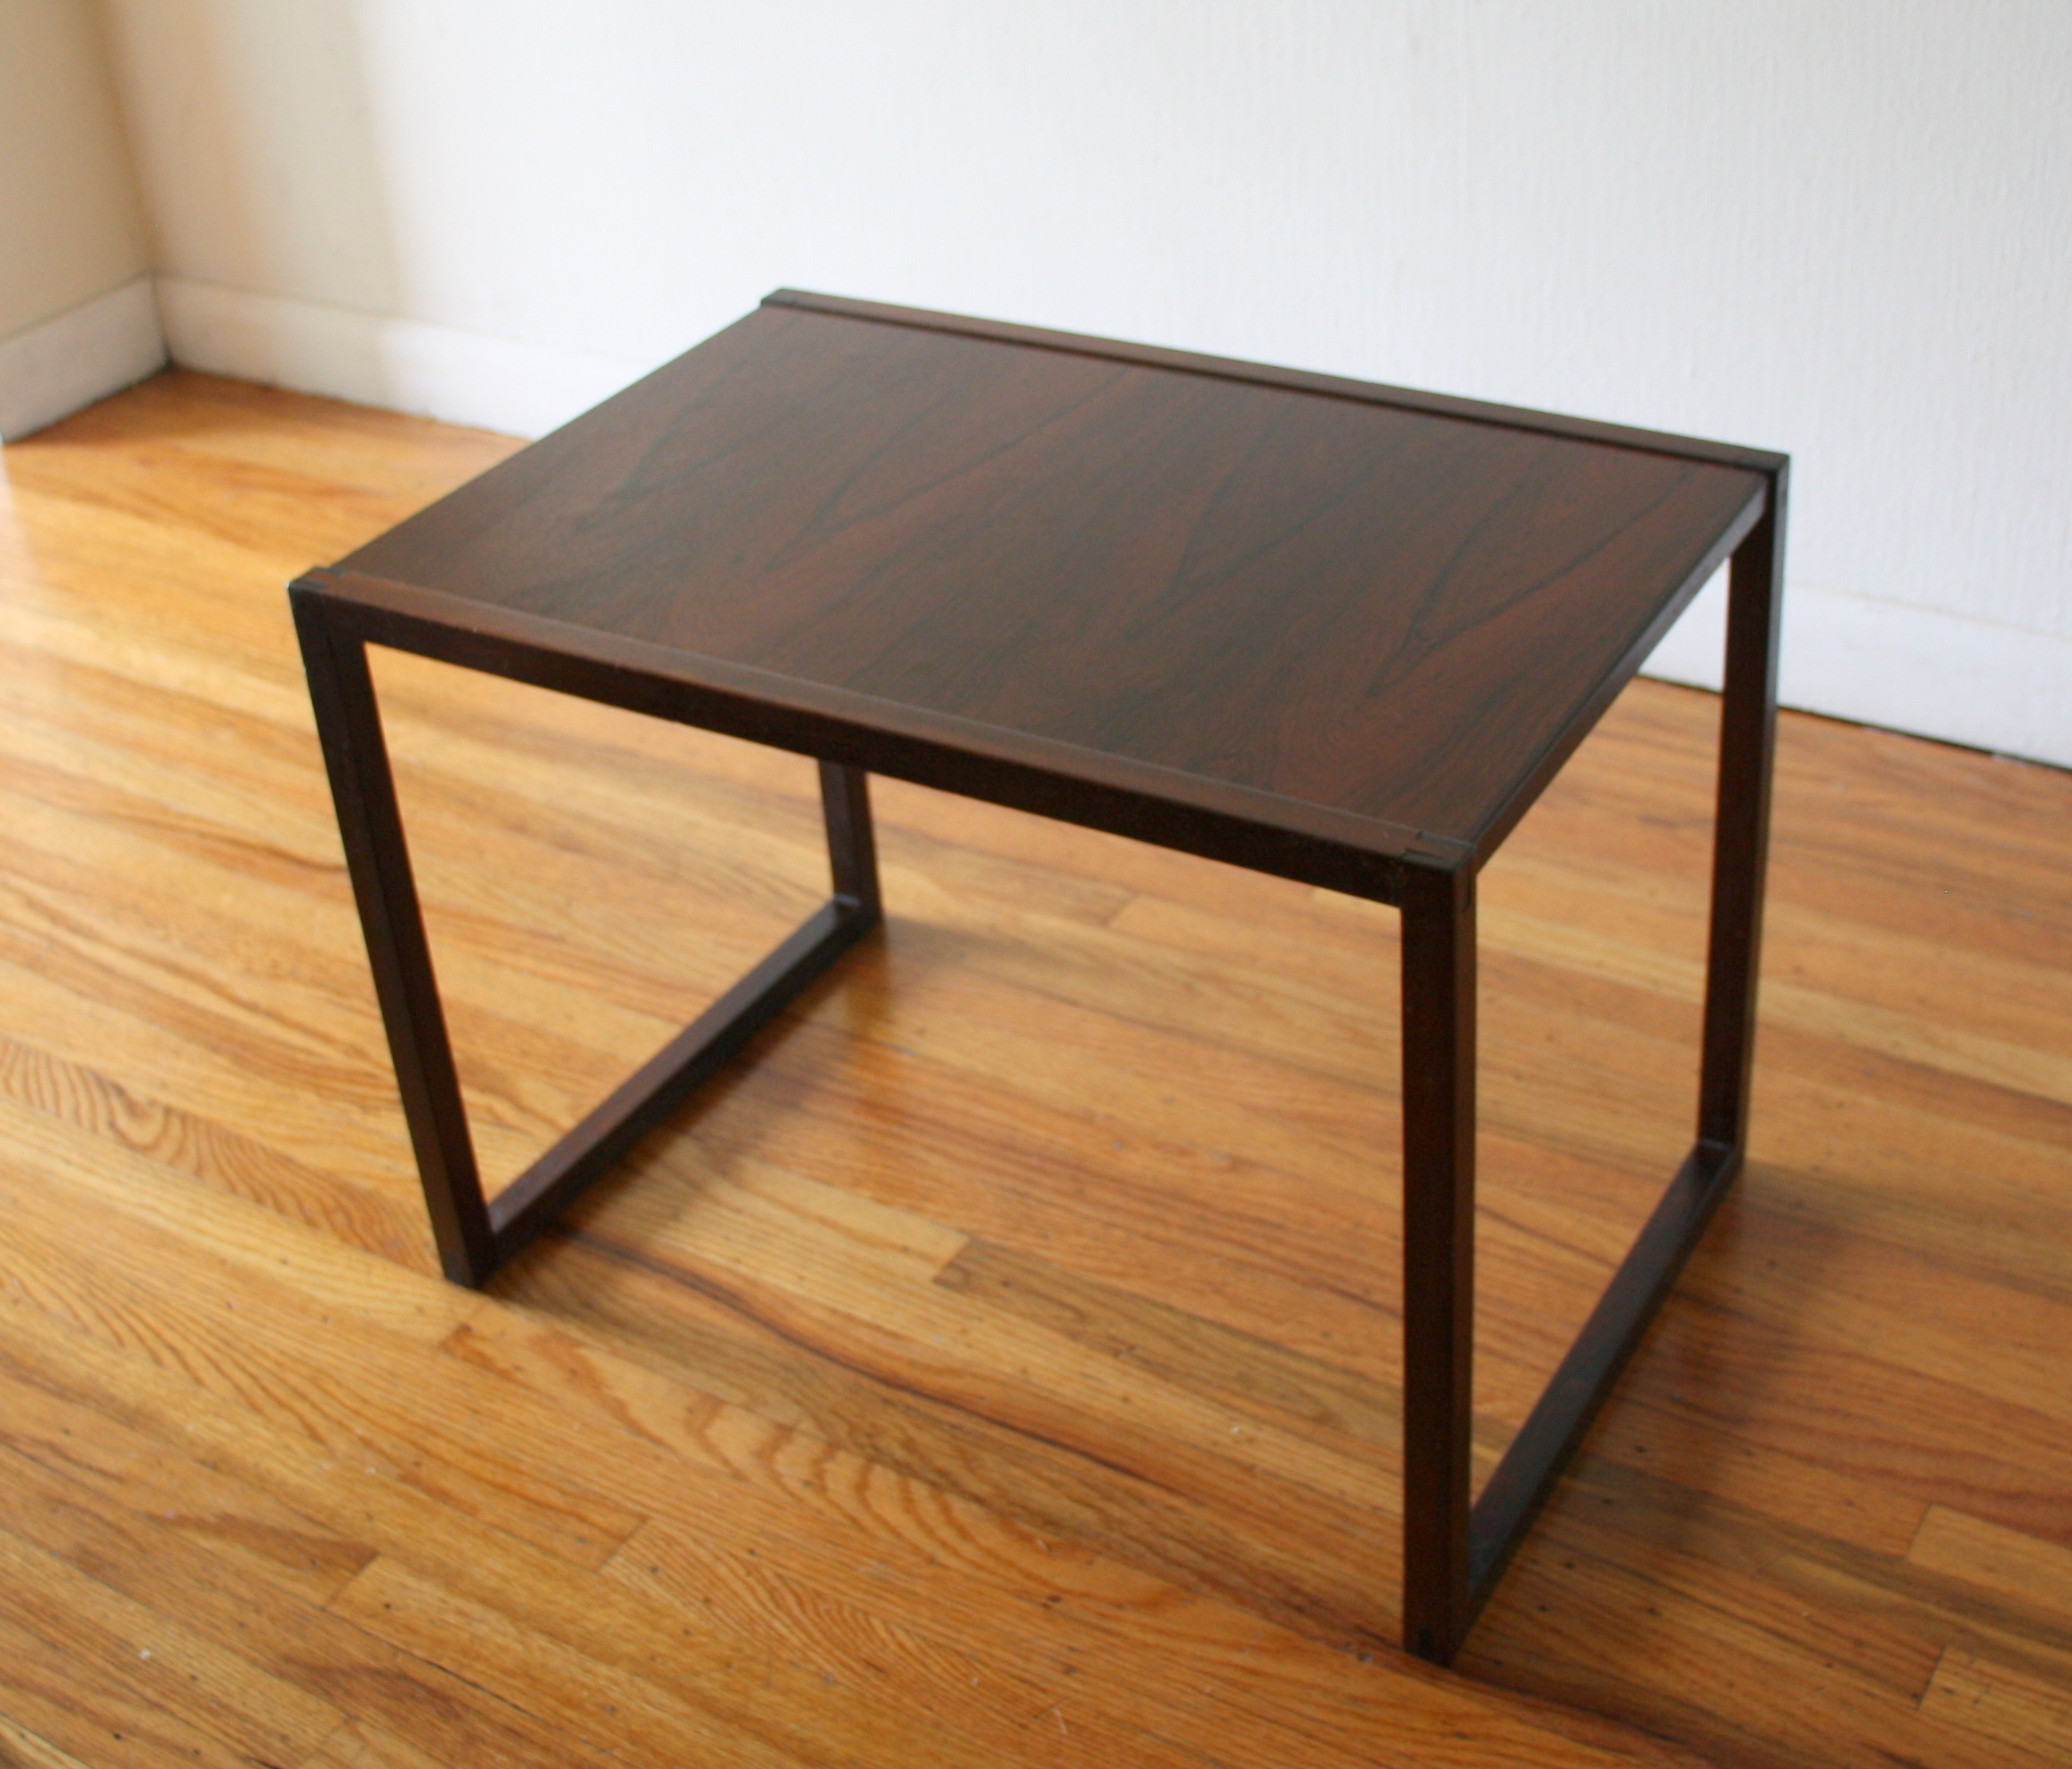 Kai Kristiansen rosewood table 2